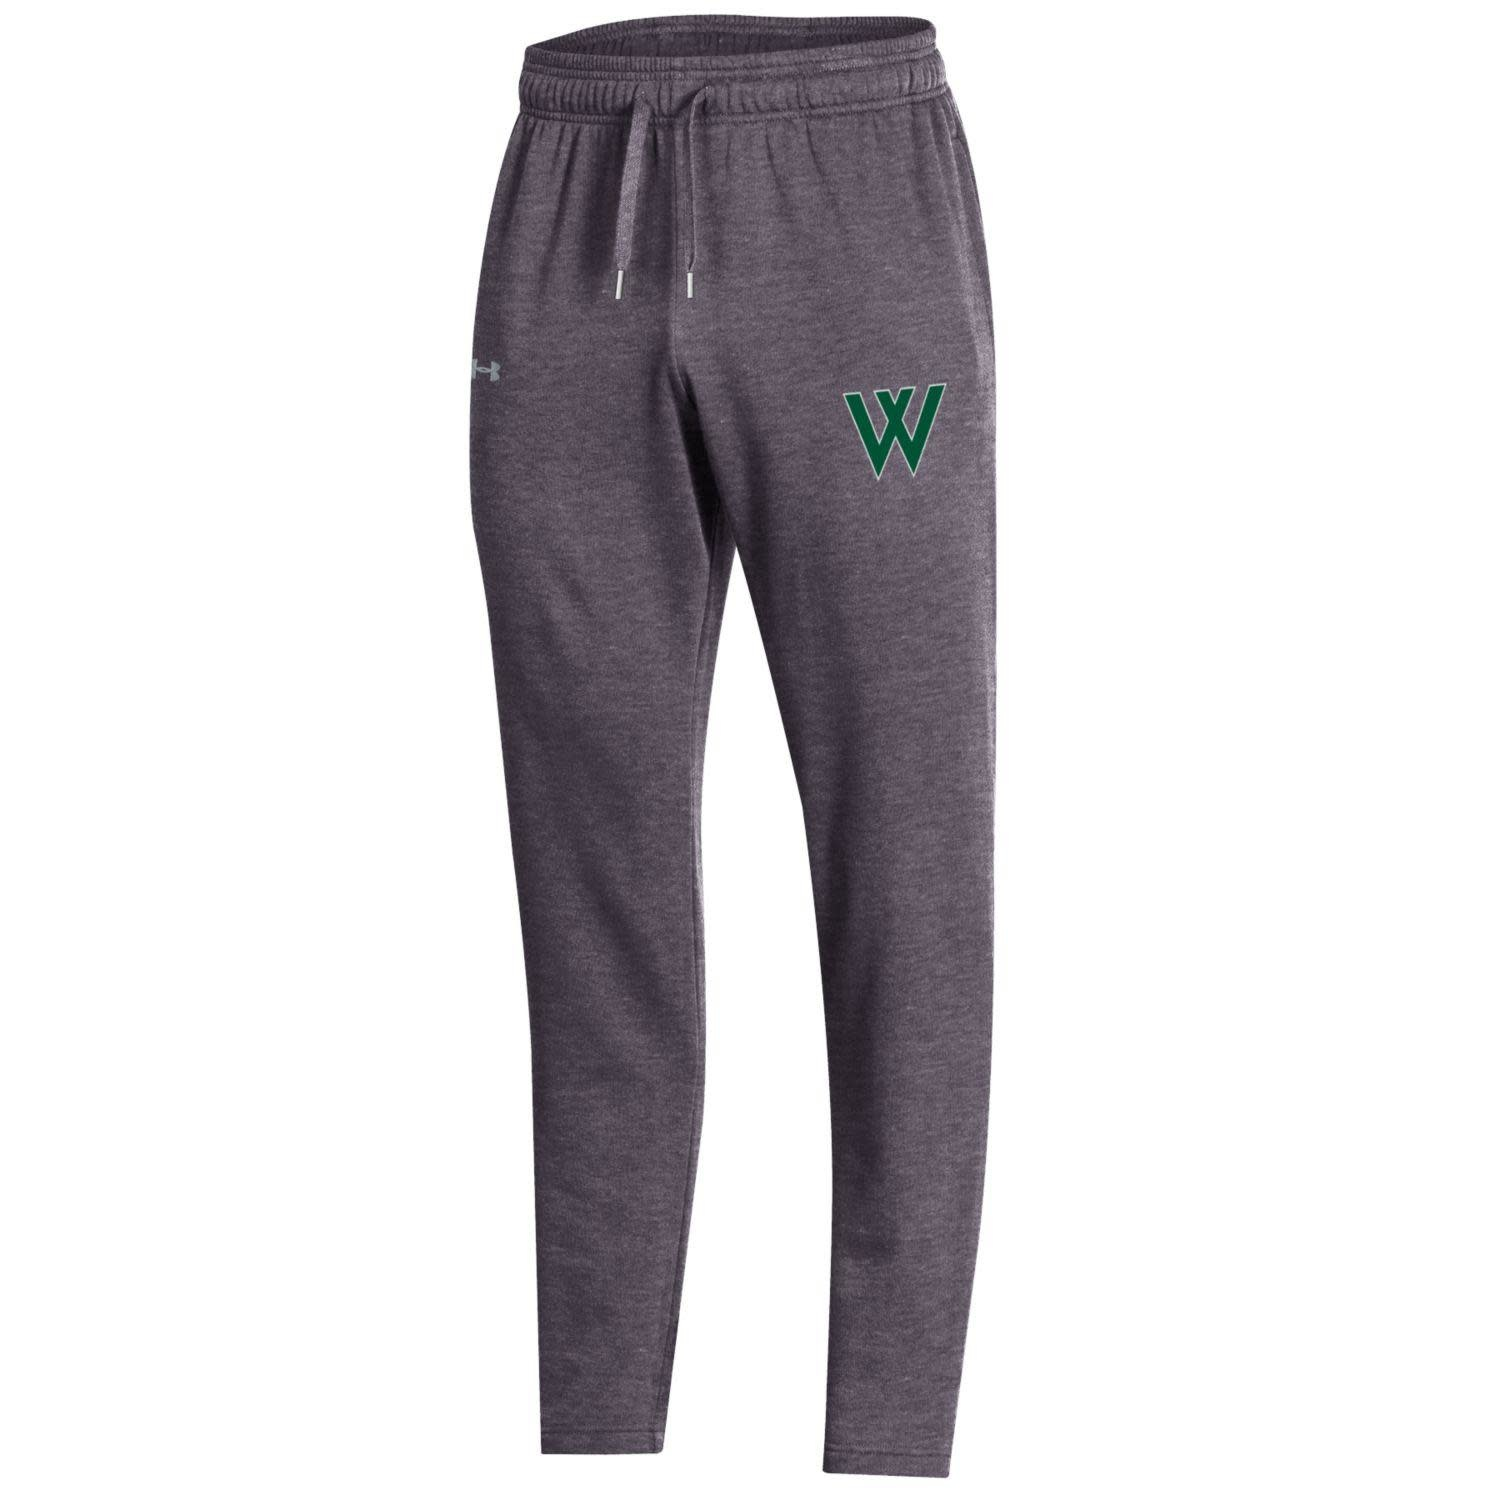 Under Armour Sweatpants: UA Mens All Day Open Bottom - Carbon